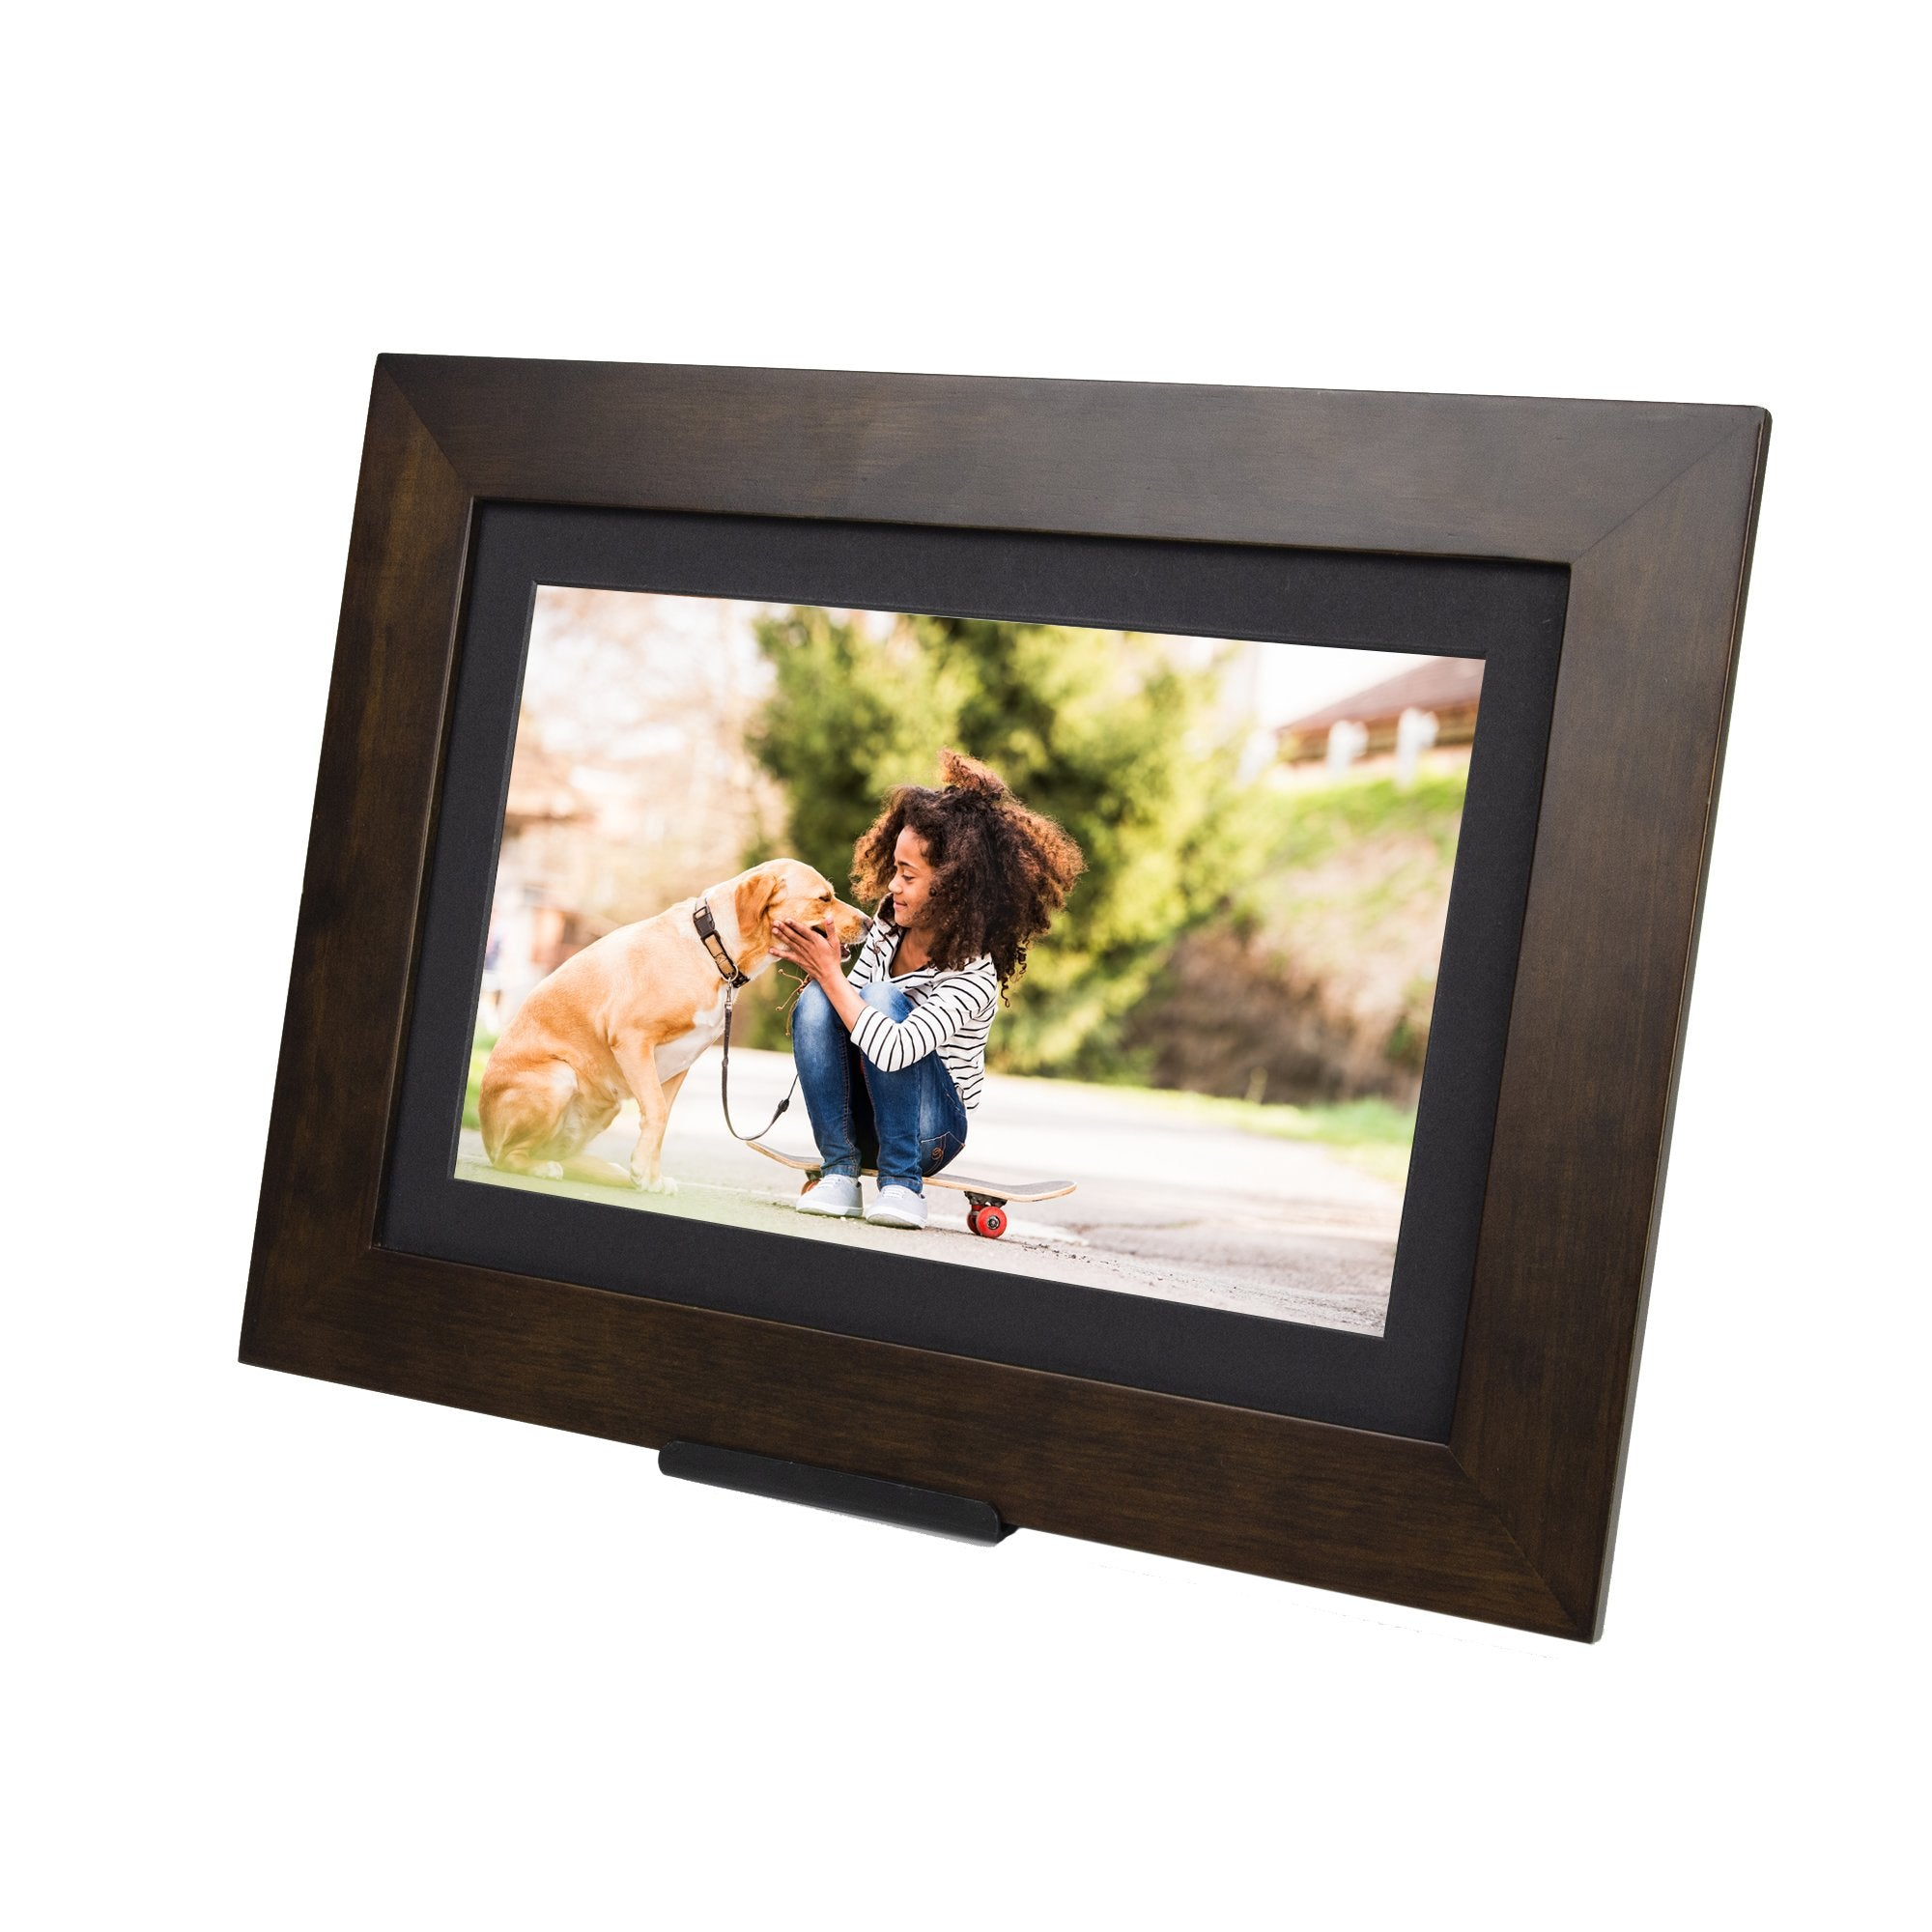 Brookstone My Life Digital Picture Show 3 inch Frame